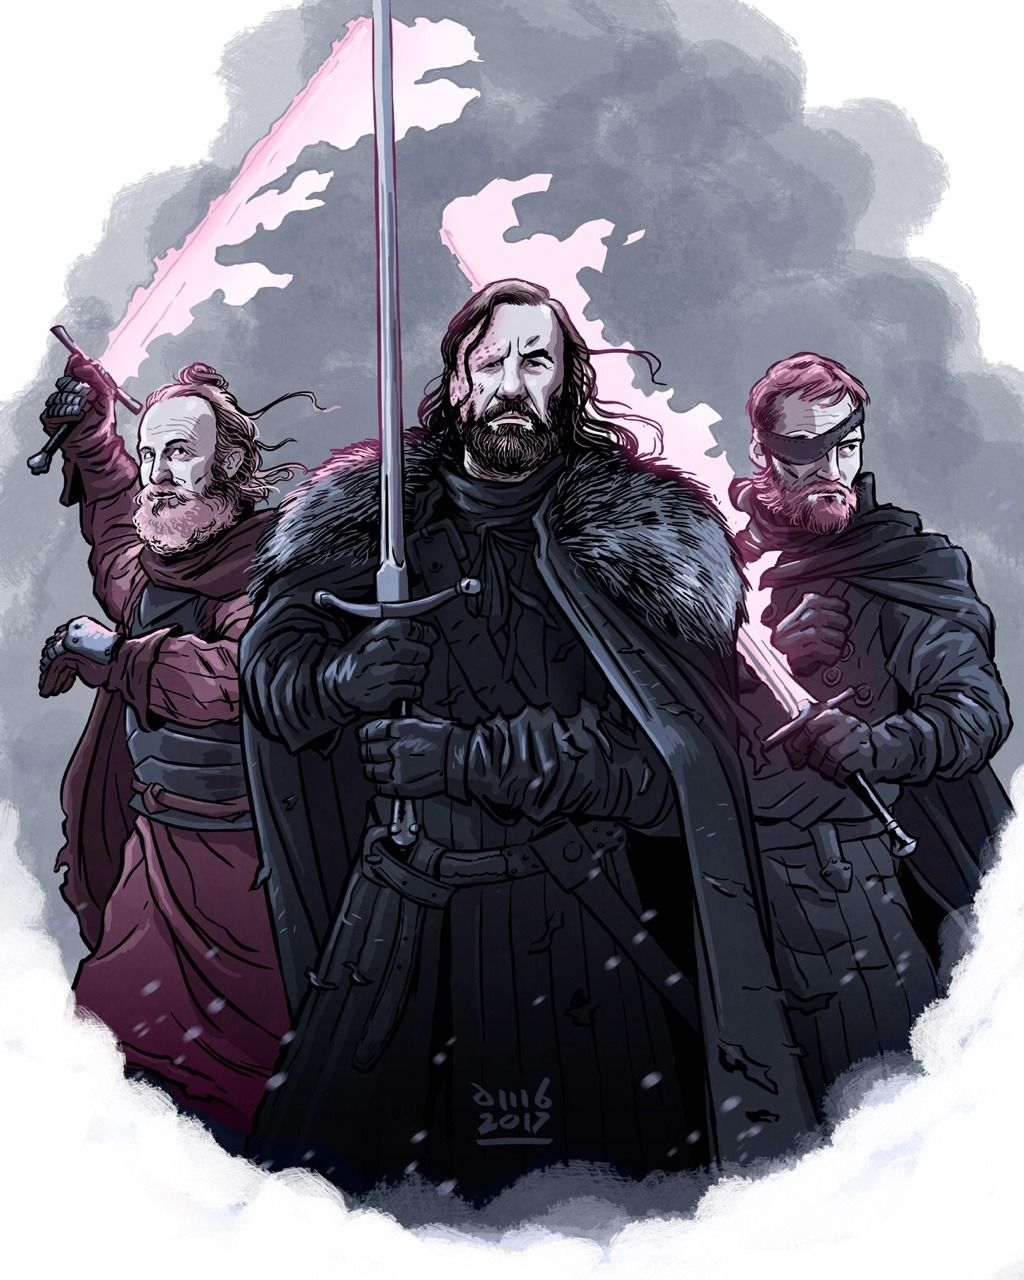 The Hound The Brotherhood Without Banners Http Instagram Com